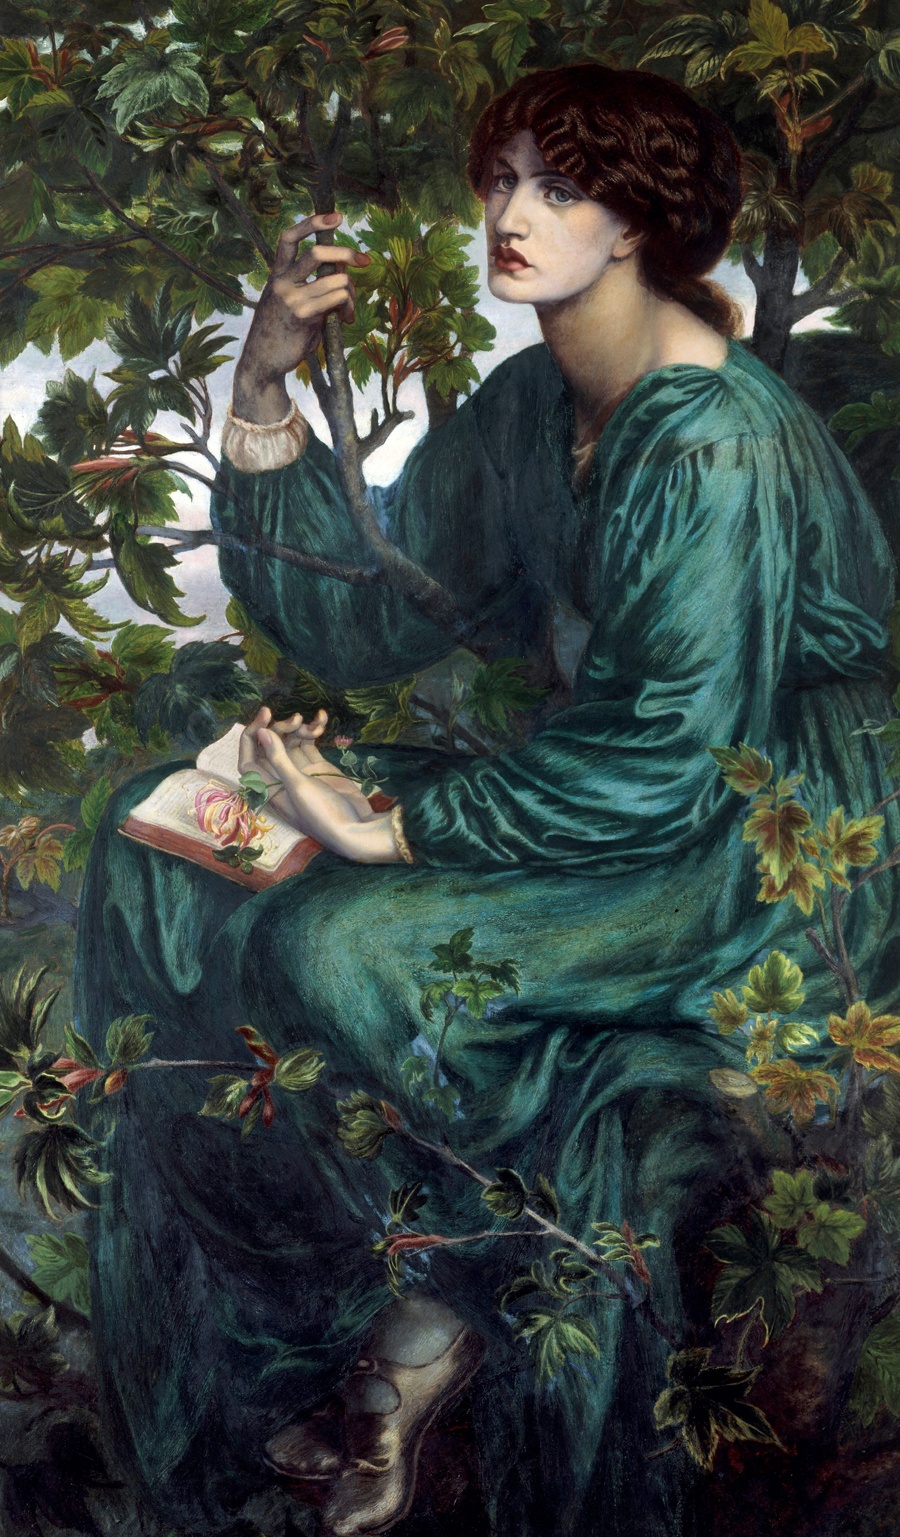 Dante_Gabriel_Rossetti_-_The_Day_Dream_-_Google_Art_Project (1)